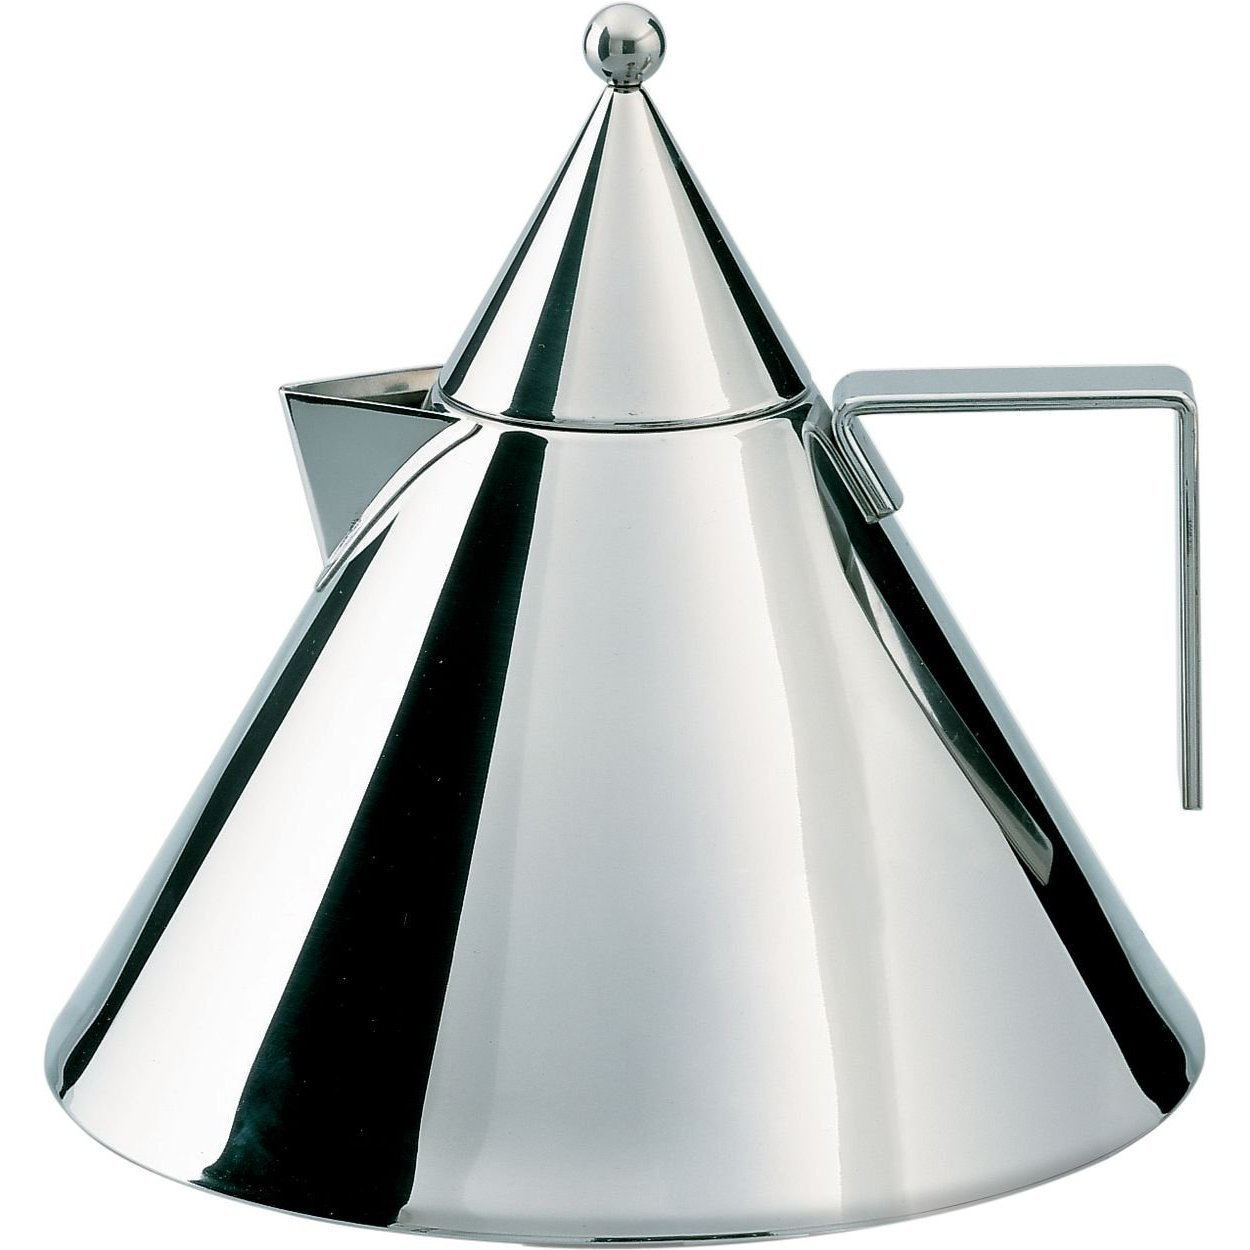 Alessi in love every time an act of love desall blog - Bouilloire alessi electrique ...